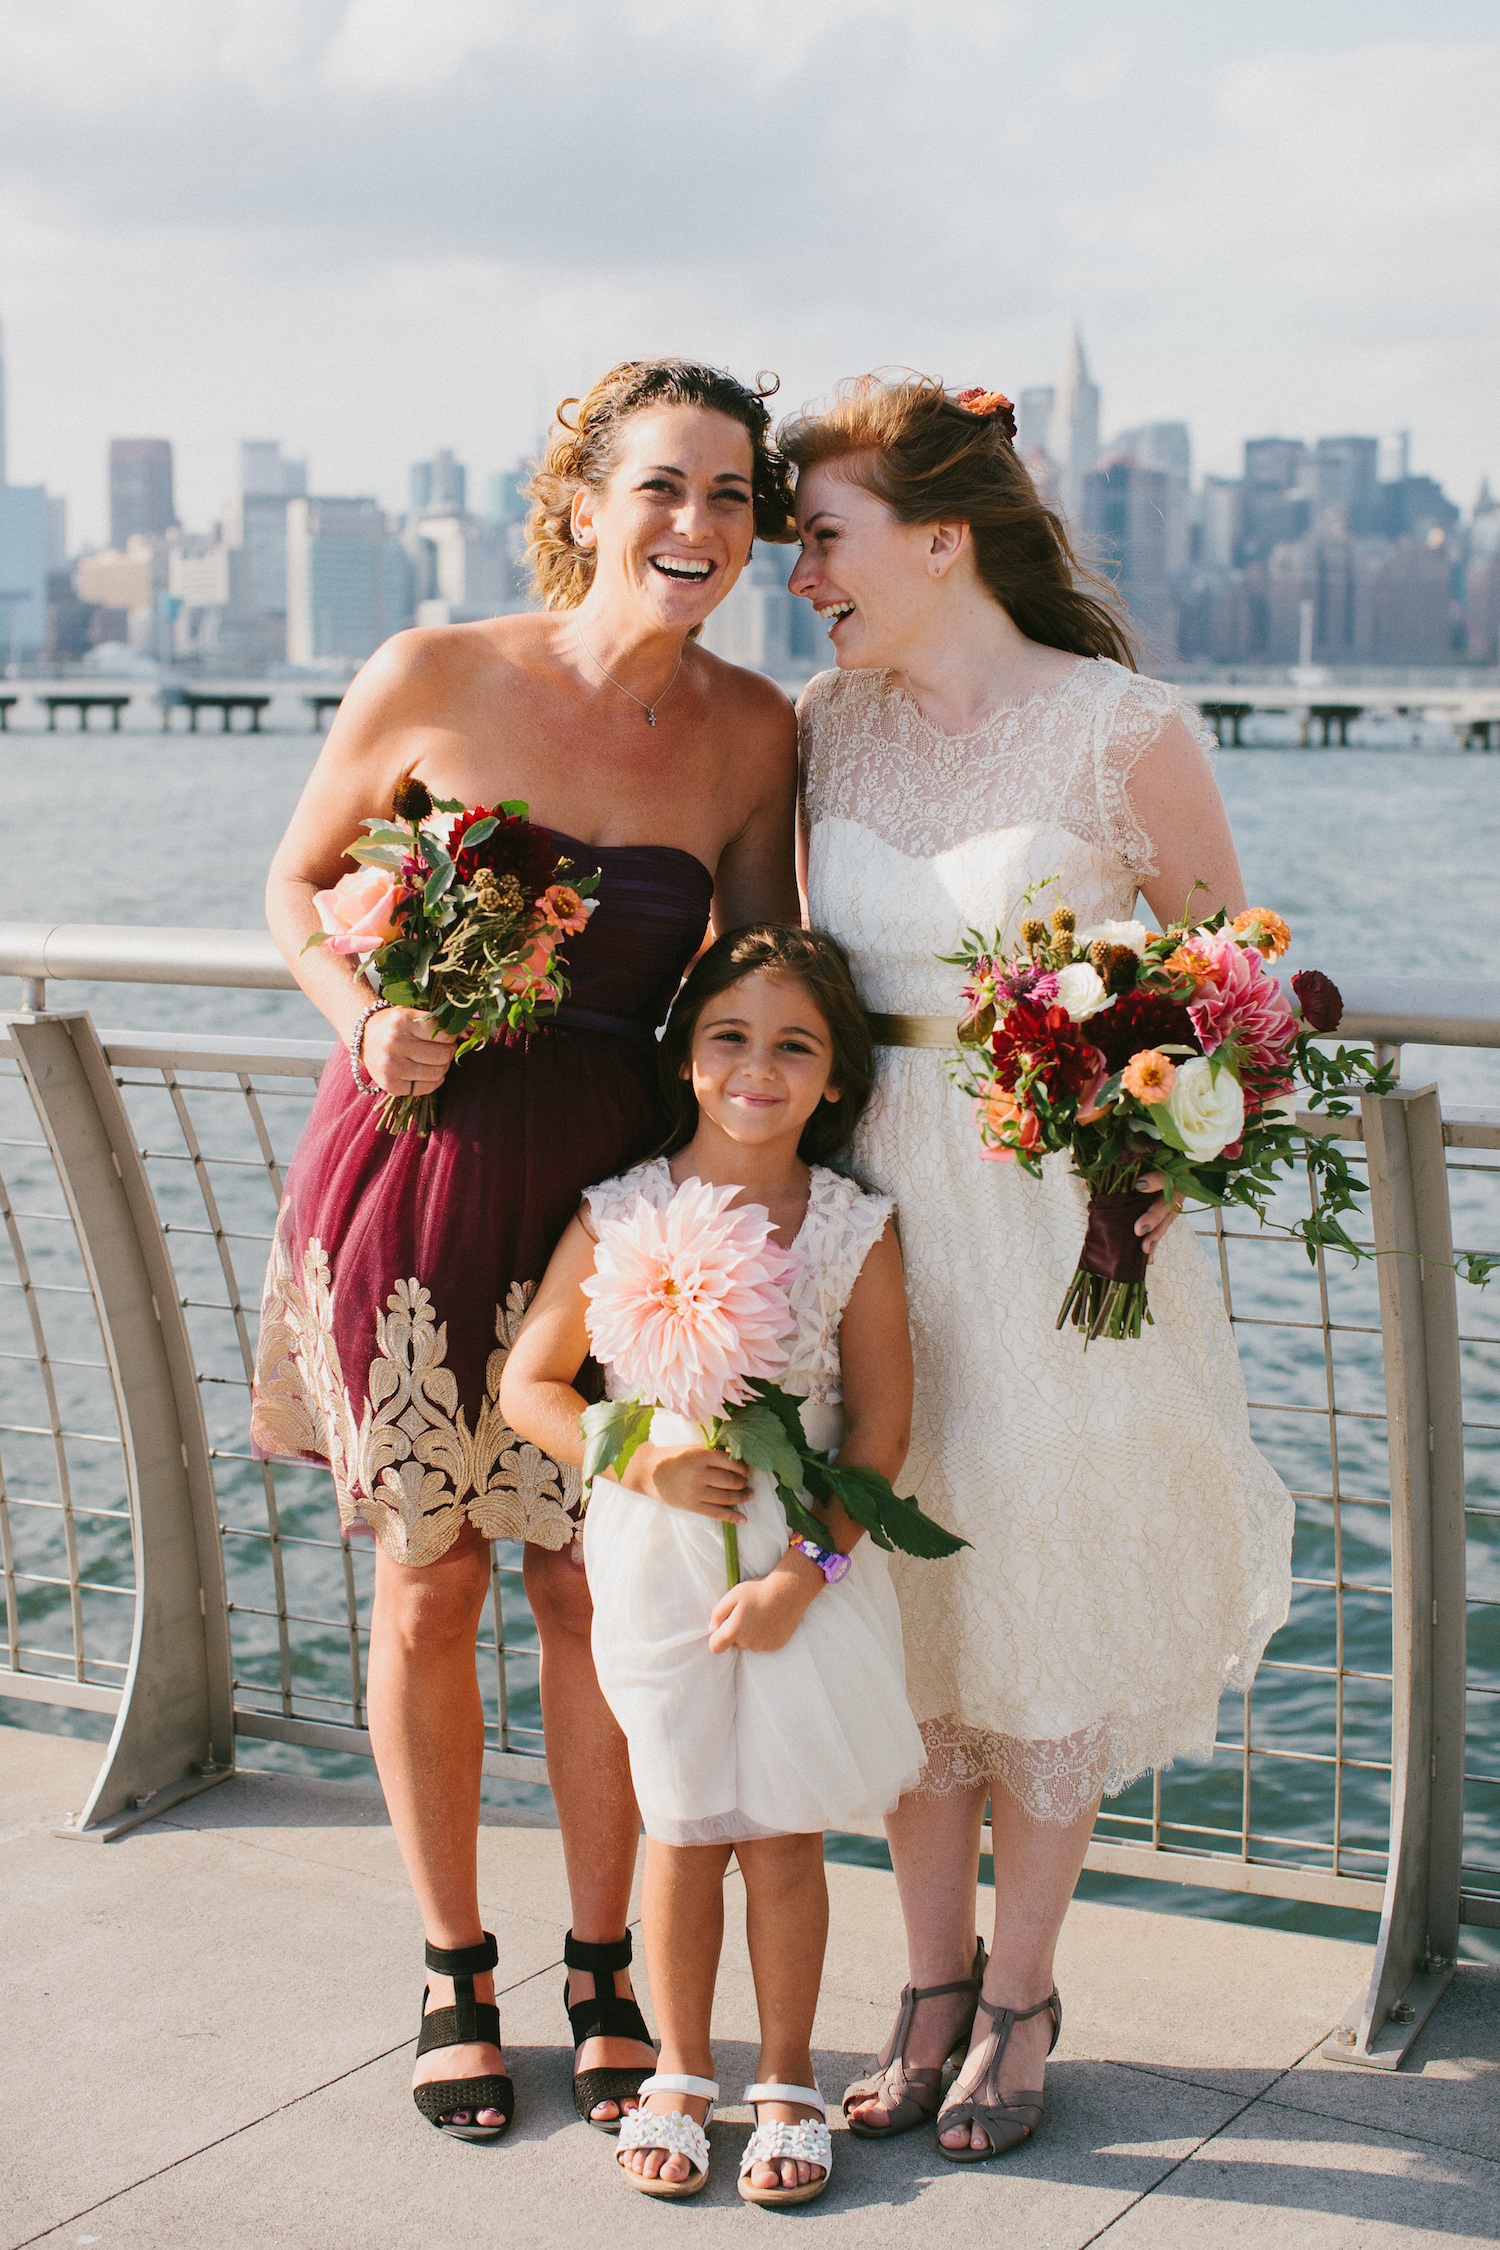 Full Aperture Floral & Corey Torpie Photography  - Brooklyn Wedding - 40.jpeg